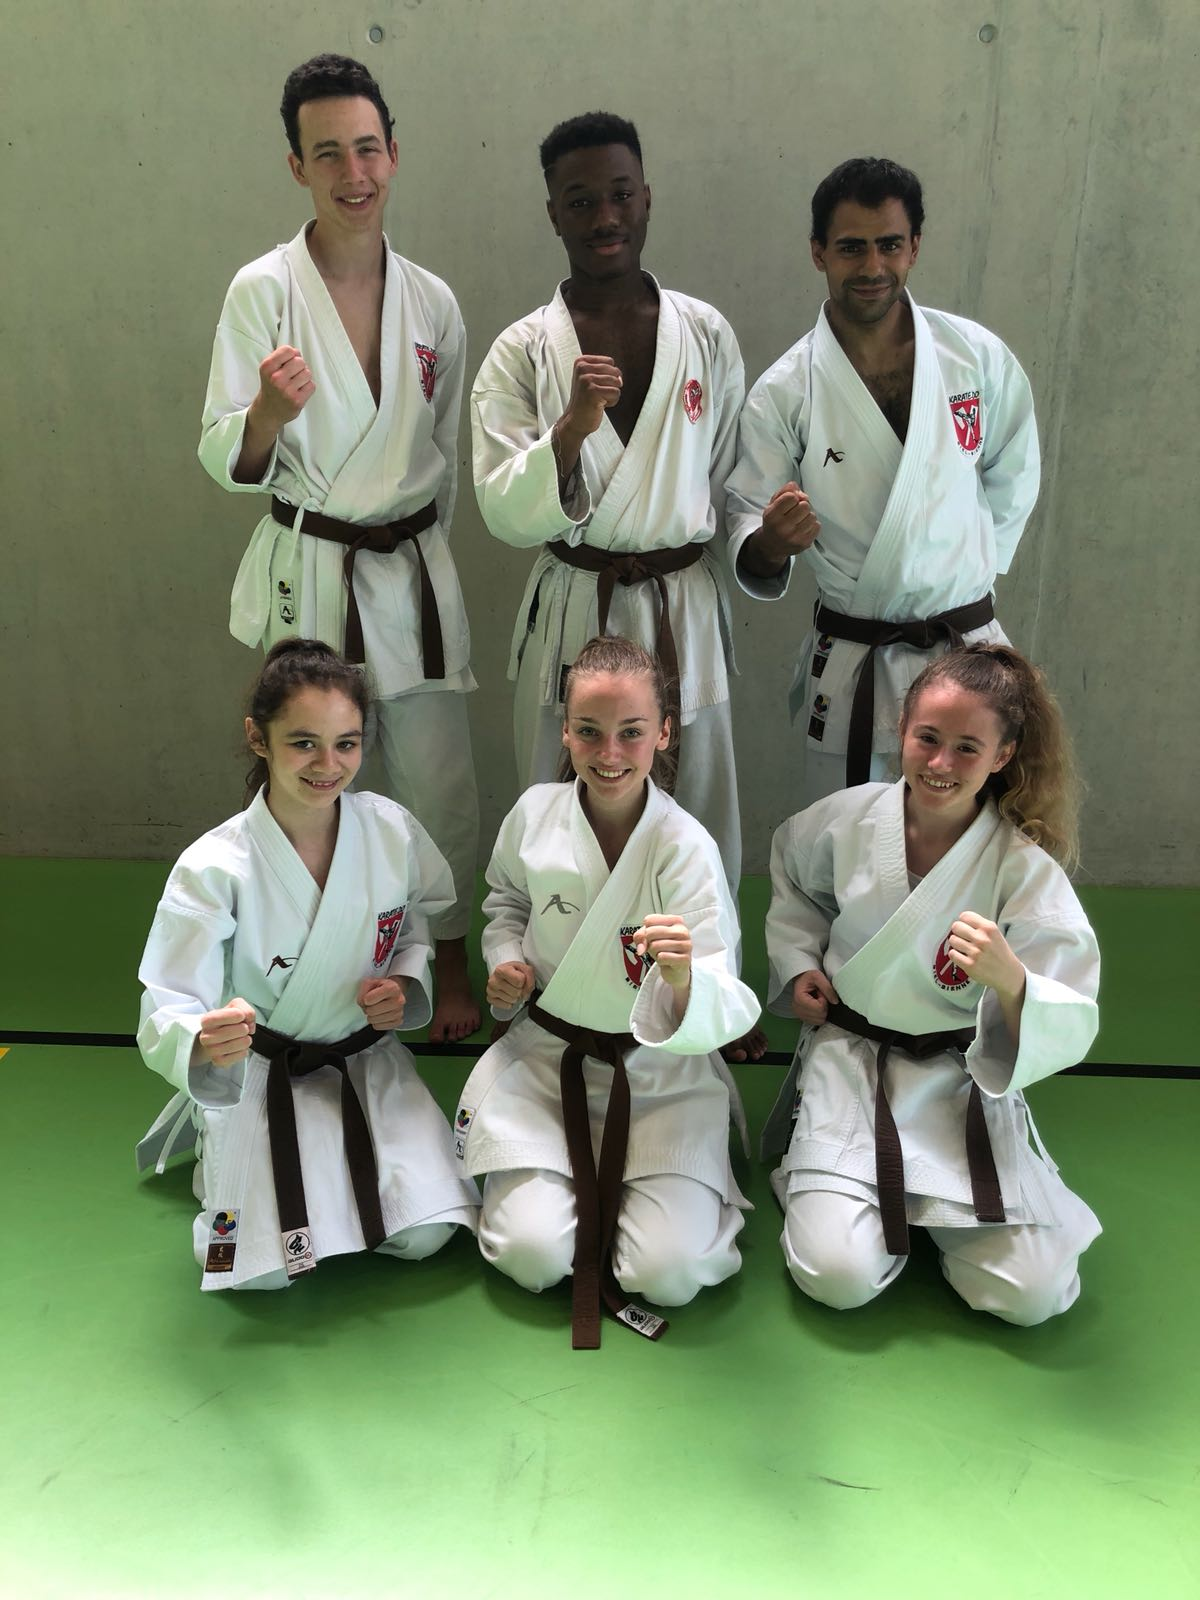 Examen Karate-Do, Küssnacht 05.05.2018